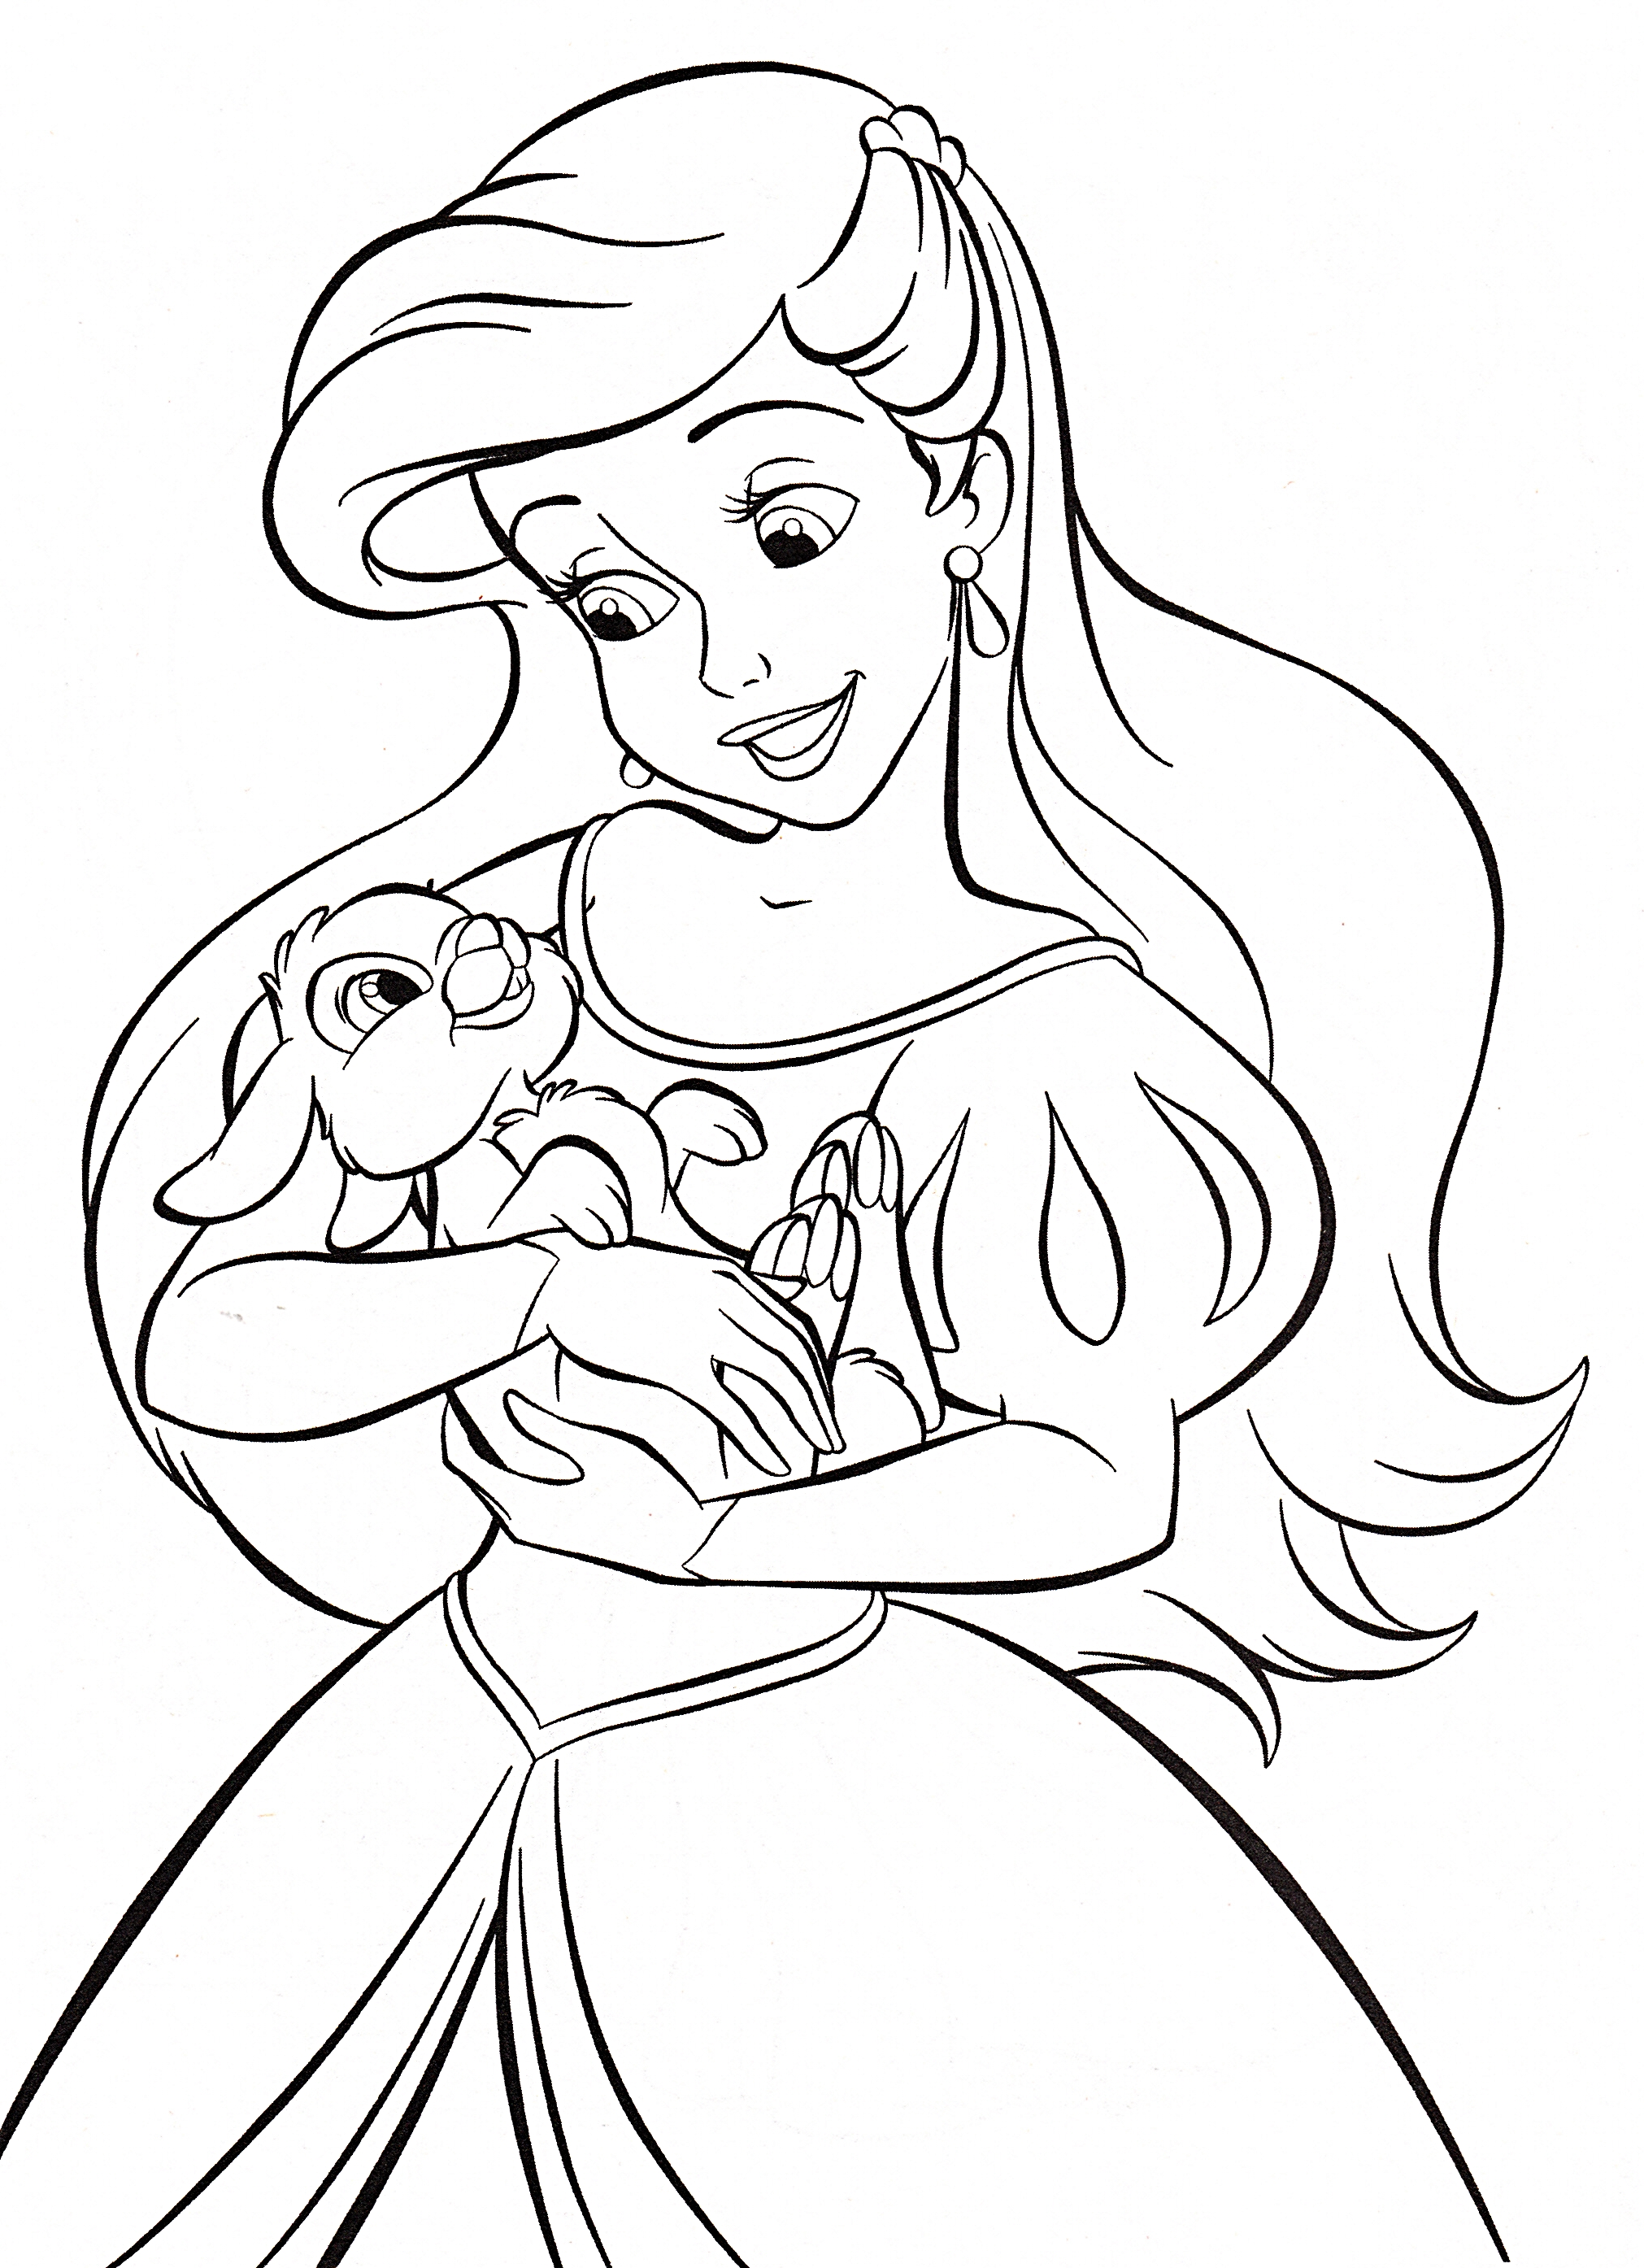 Walt Disney Coloring Pages Princess Ariel Personajes De Walt